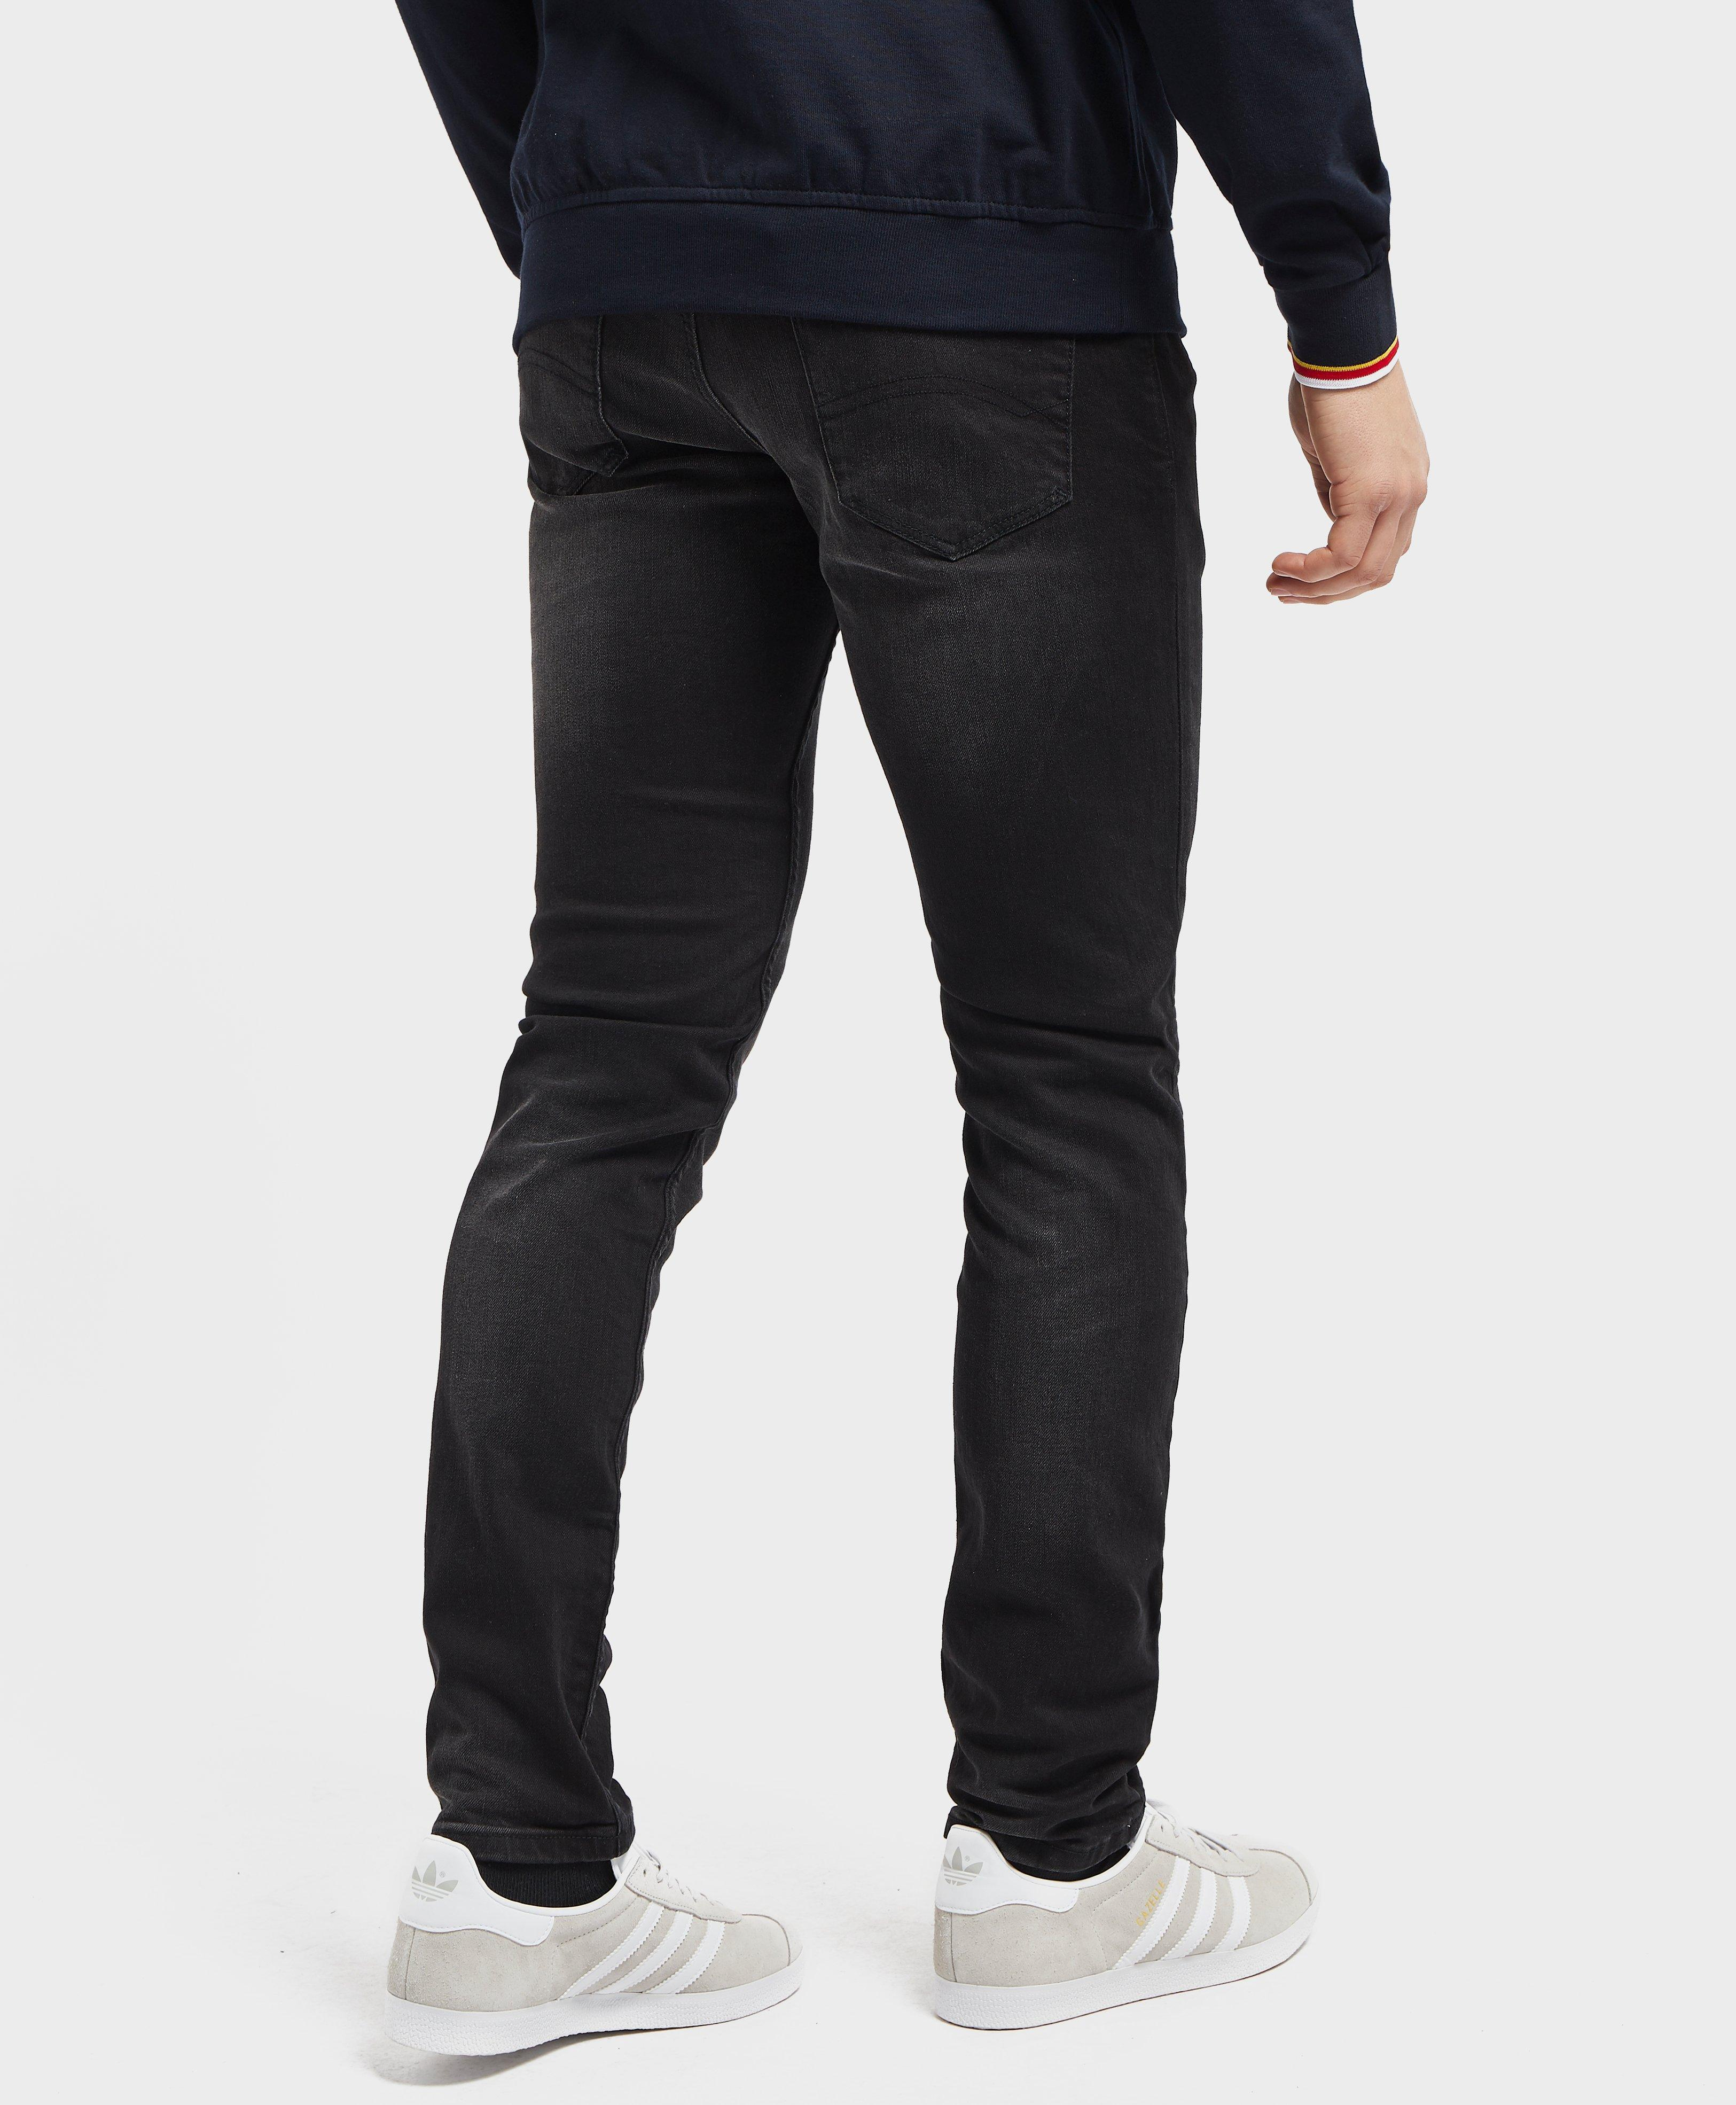 4a8134278 Lyst - Tommy Hilfiger Slim Steve Jeans in Black for Men